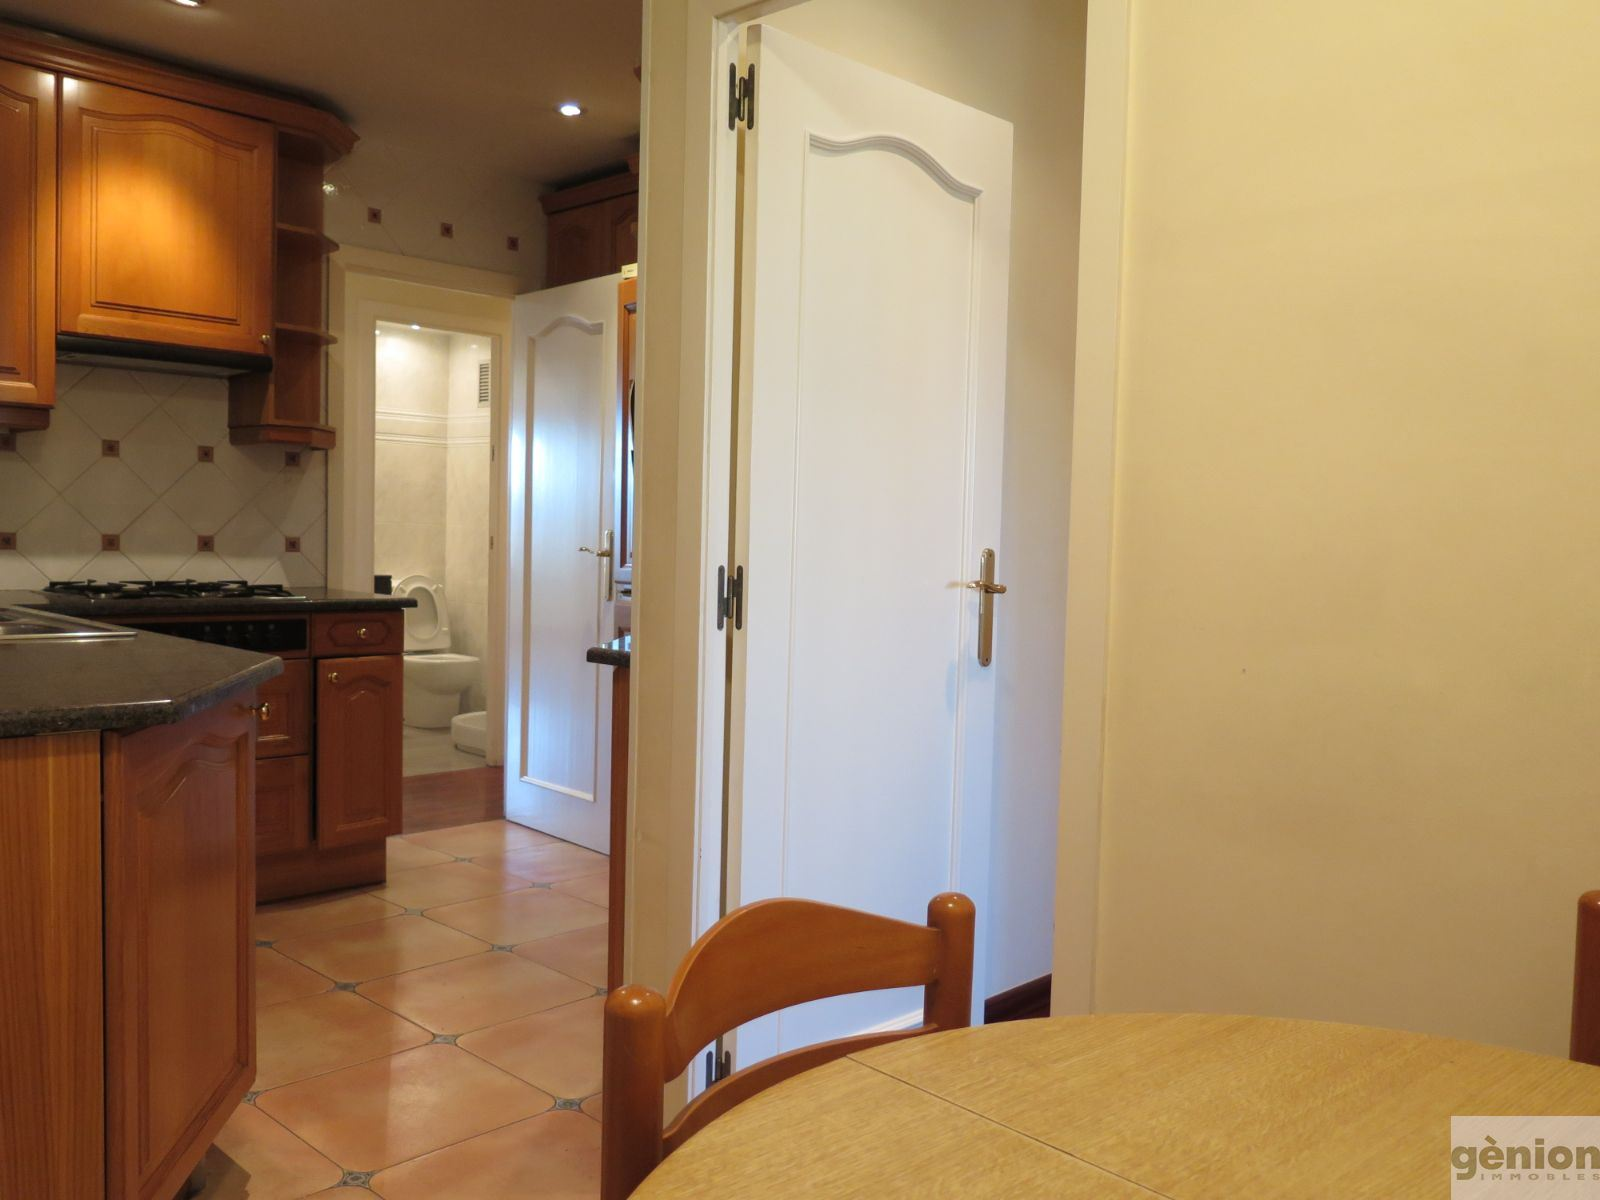 TOP-FLOOR APARTMENT IN GIRONA'S EIXAMPLE DISTRICT. SOUTH ORIENTATION, 4 BEDROOMS, PARKING PLACE INCLUDED